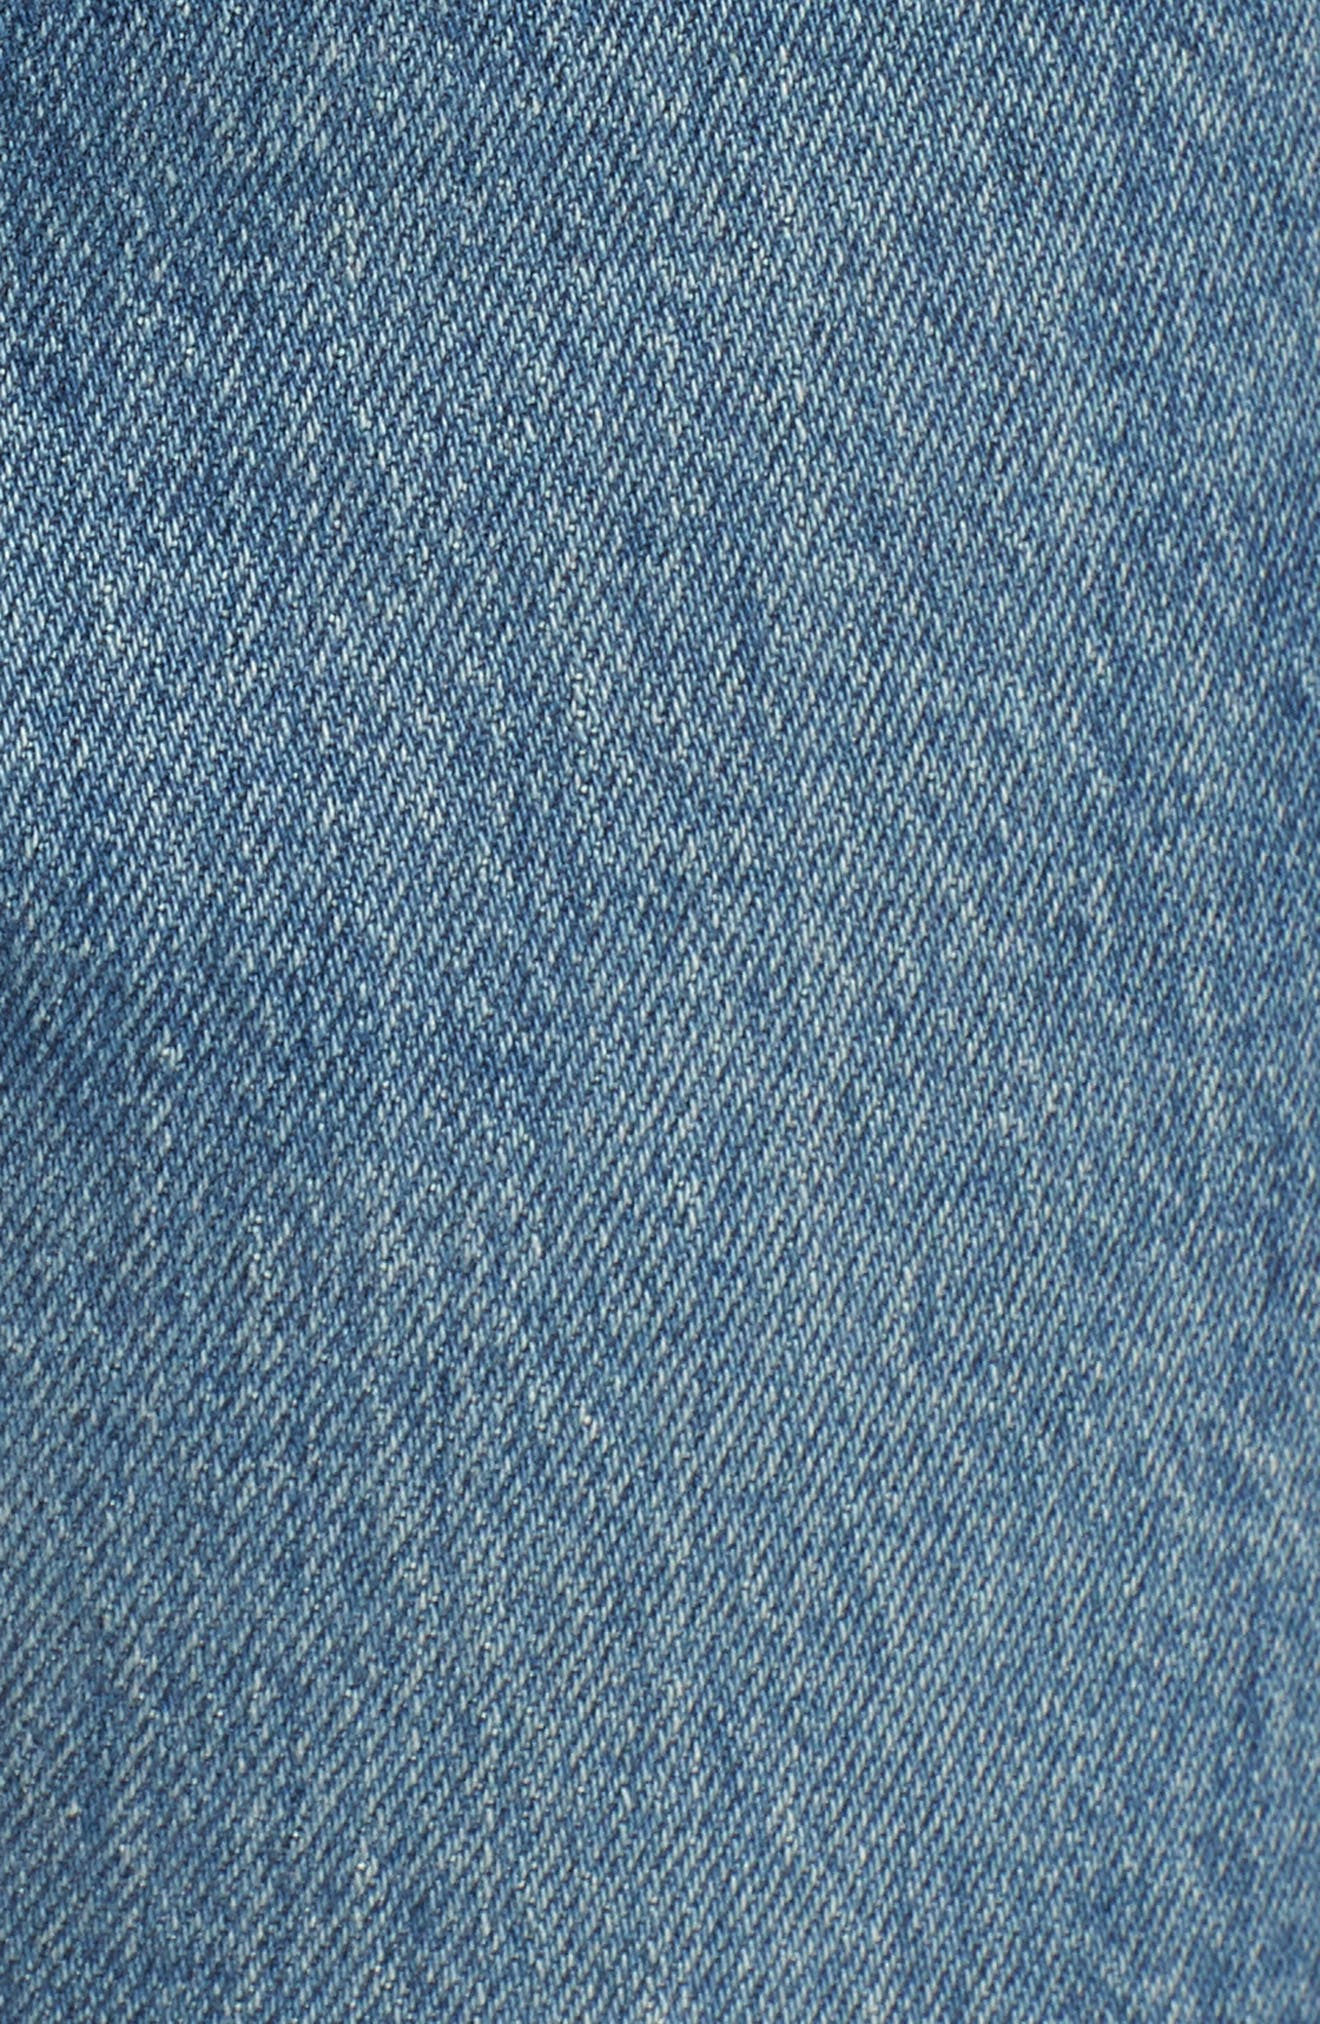 LEVI'S<SUP>®</SUP>, Wedgie Icon Fit High Waist Ankle Jeans, Alternate thumbnail 6, color, THESE DREAMS